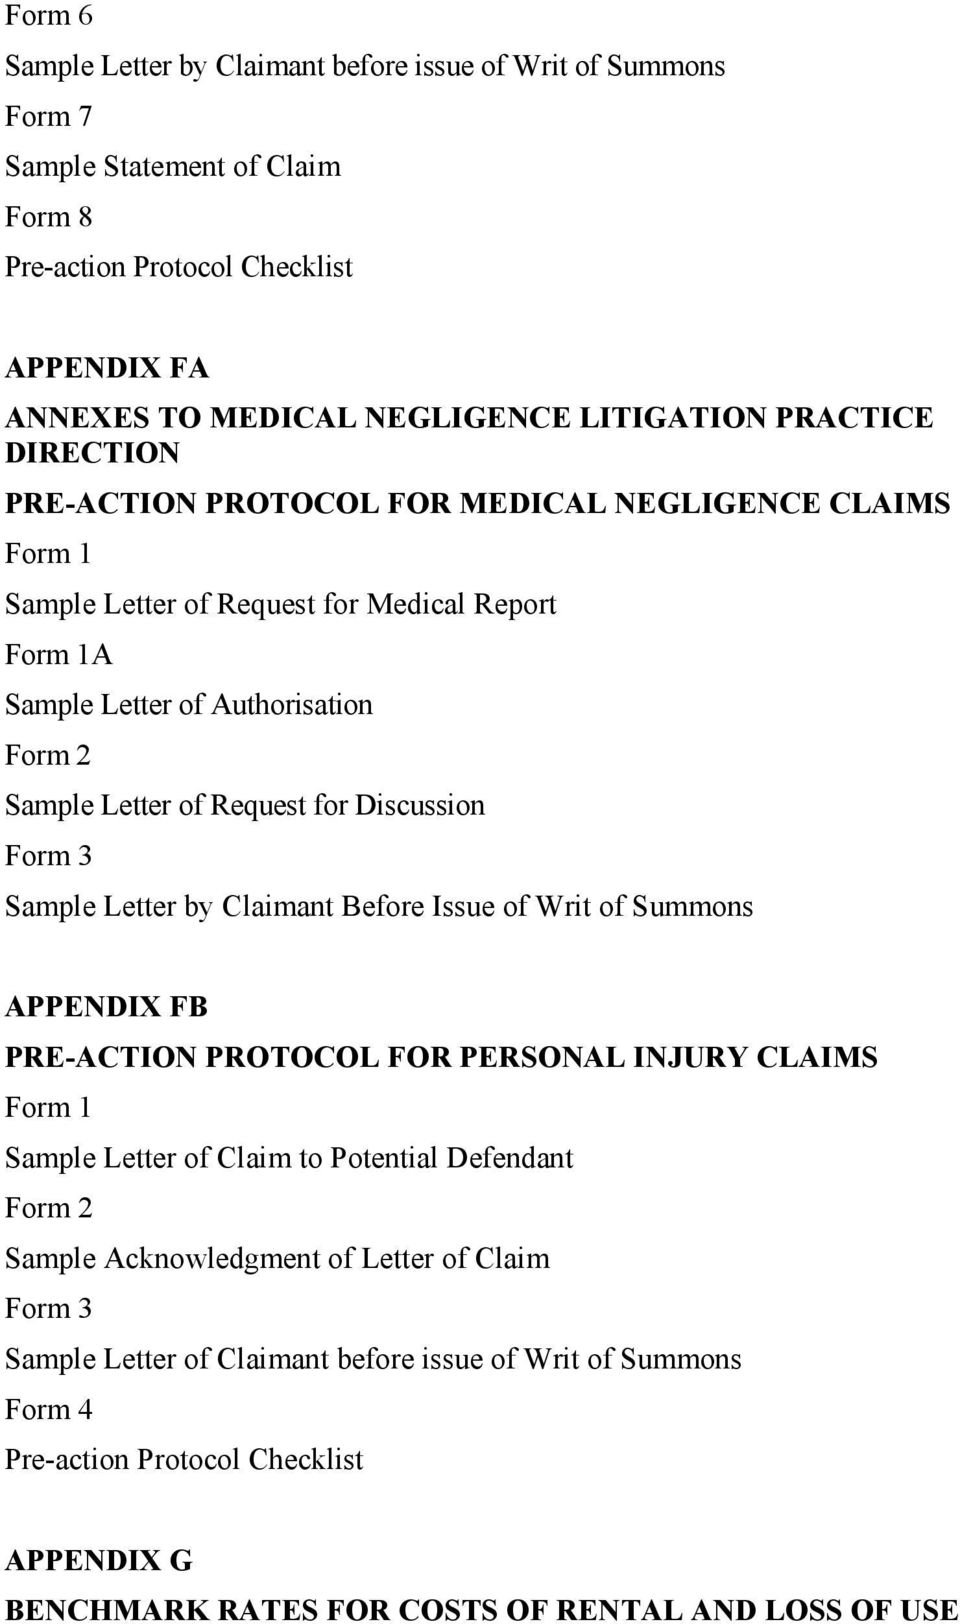 Discussion Form 3 Sample Letter by Claimant Before Issue of Writ of Summons APPENDIX FB PRE-ACTION PROTOCOL FOR PERSONAL INJURY CLAIMS Form 1 Sample Letter of Claim to Potential Defendant Form 2